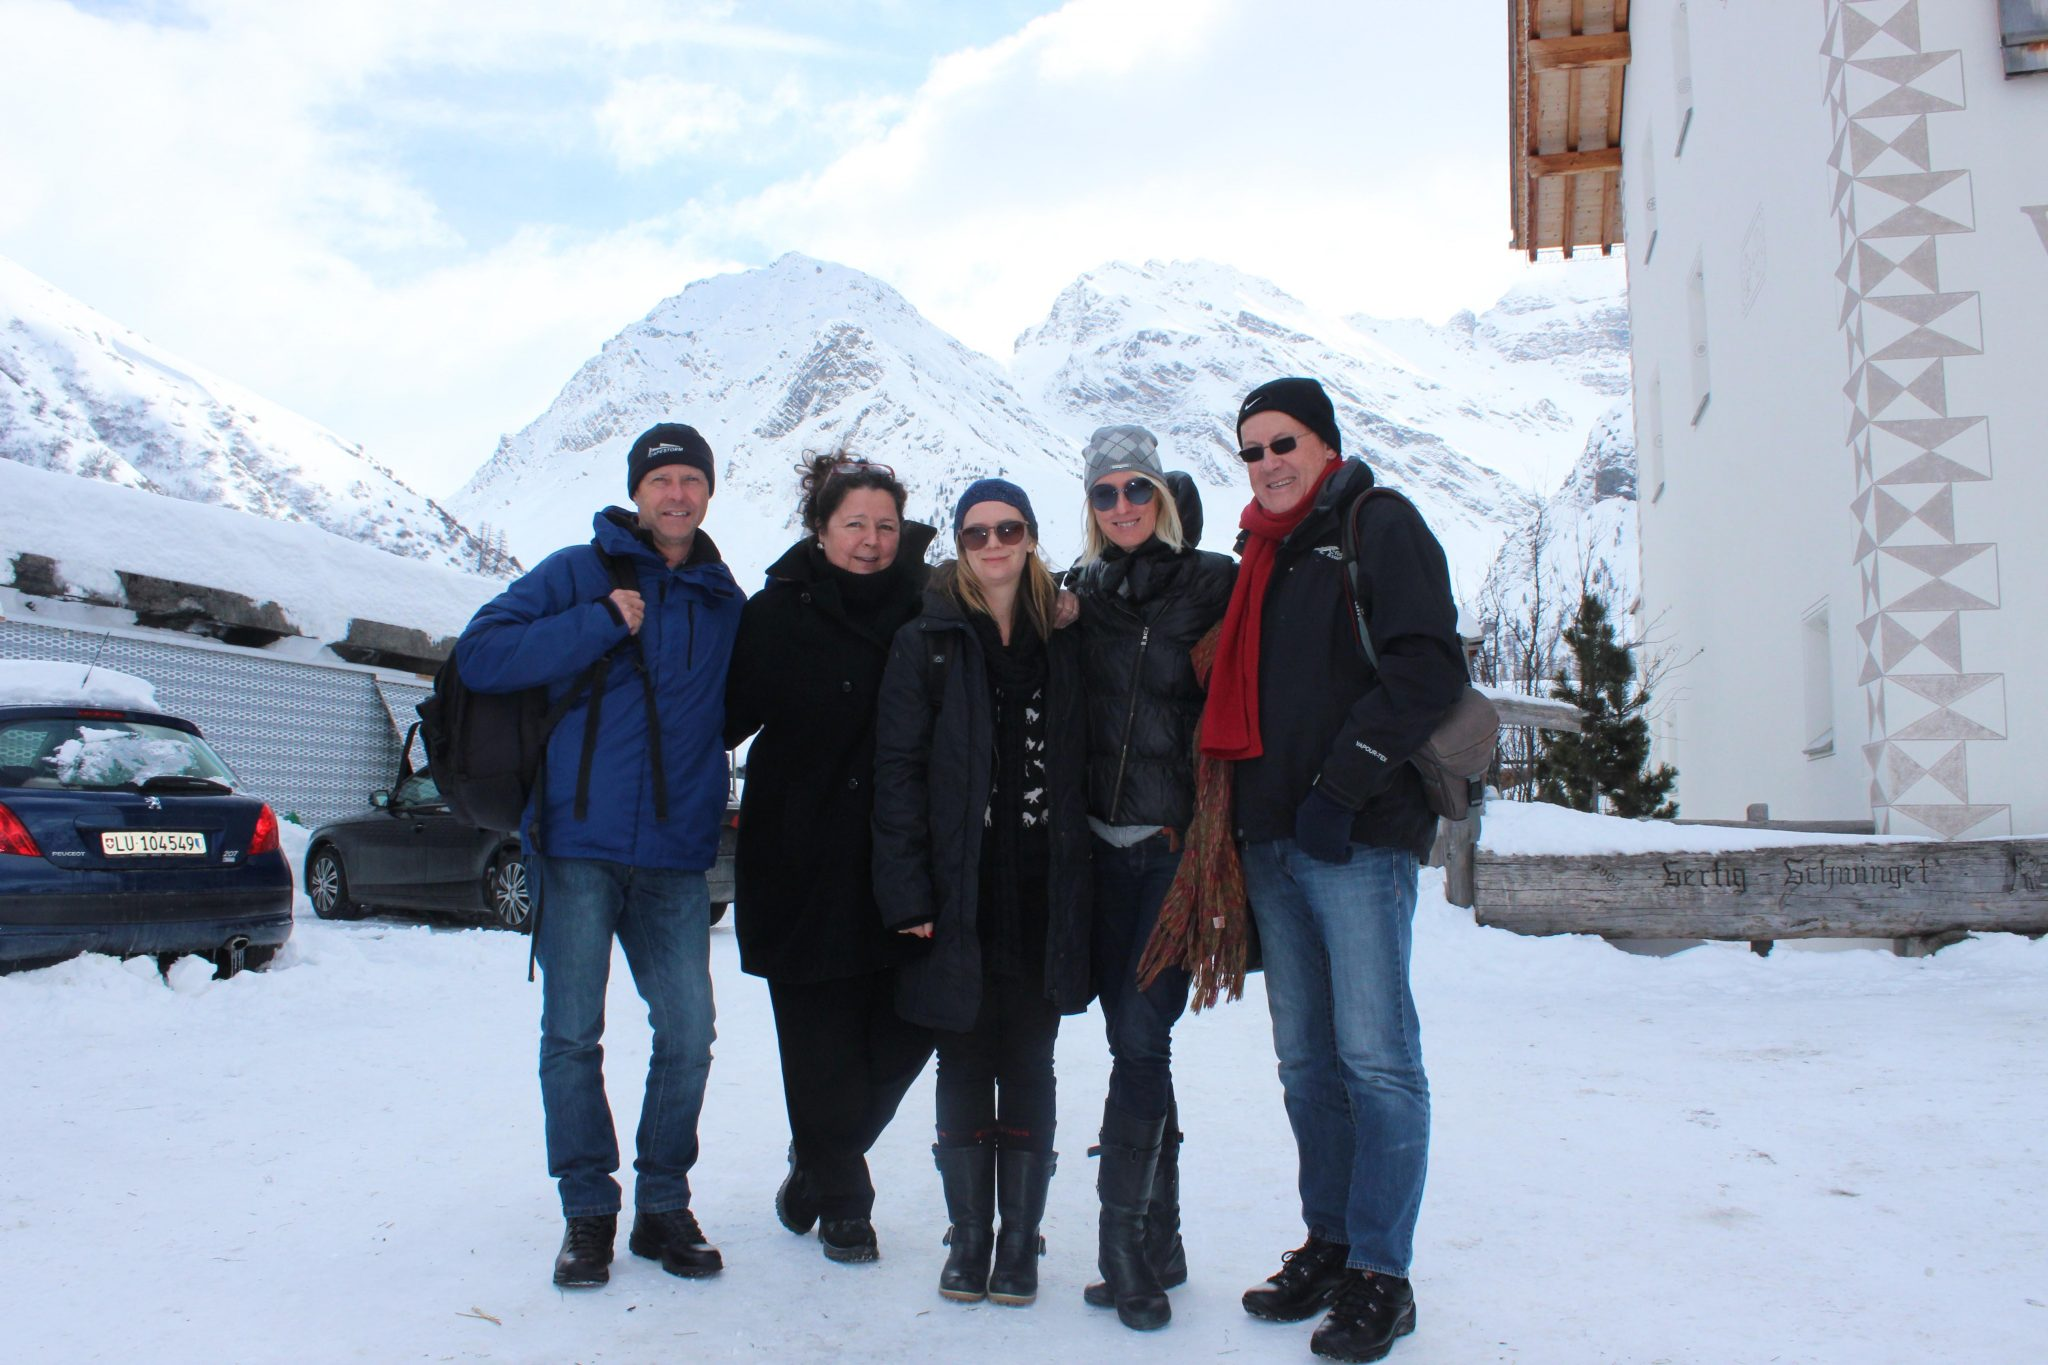 I traveled with a group of amazing people: Justin Fox (travel writer), Karin Duncker (SA pubiicist for Edelweiss), Ruth Cooper (Bizcommunity), Norman McFarlane (travel/wine writer)